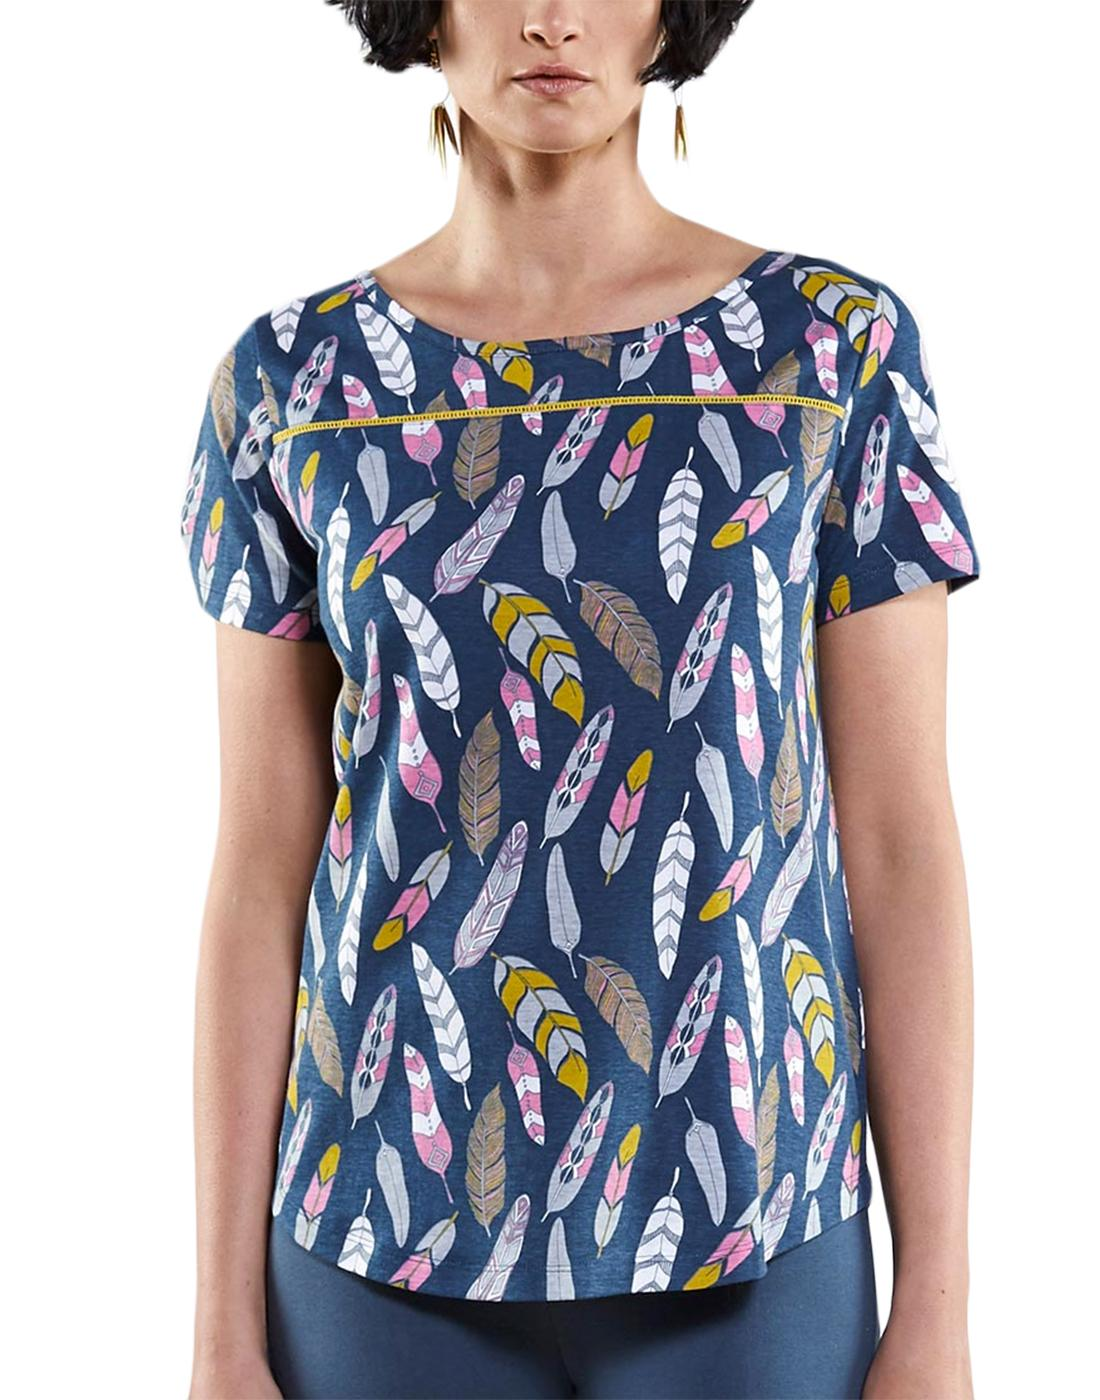 NOMADS Womens Retro 70s Feather Print T-Shirt Top